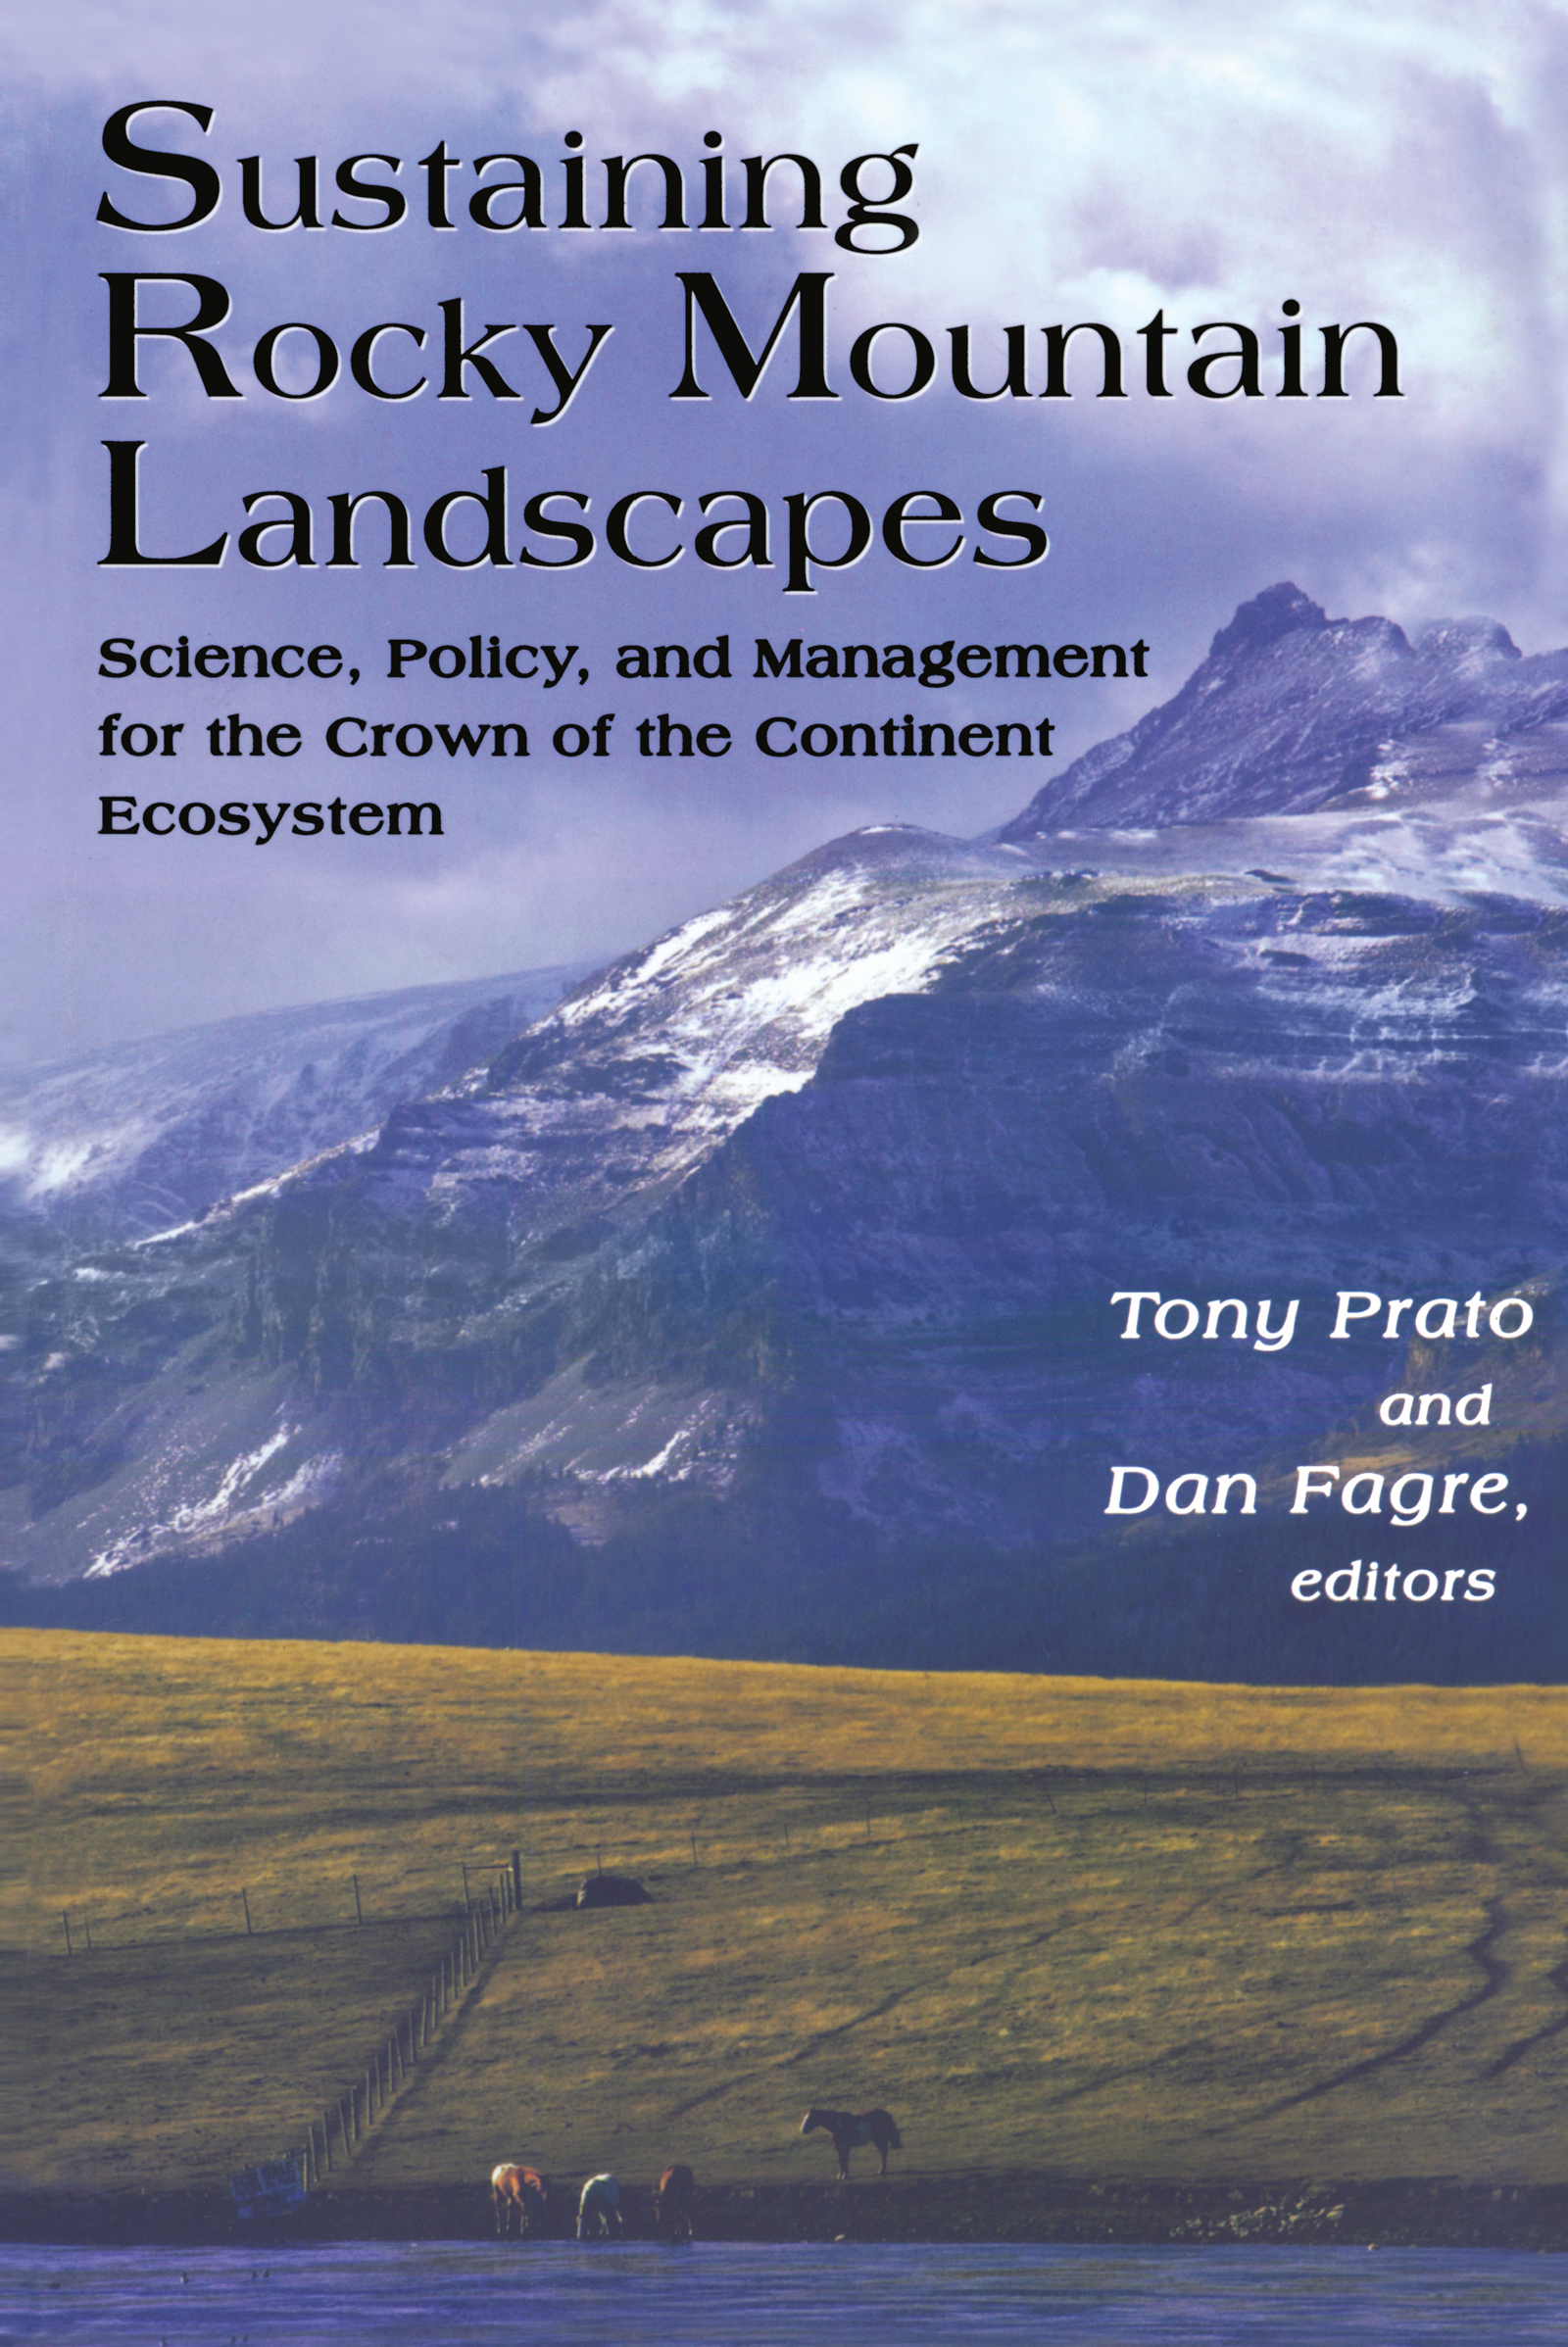 Sustaining Rocky Mountain Landscapes: Science, Policy, and Management for the Crown of the Continent Ecosystem, 1st Edition (Paperback) book cover